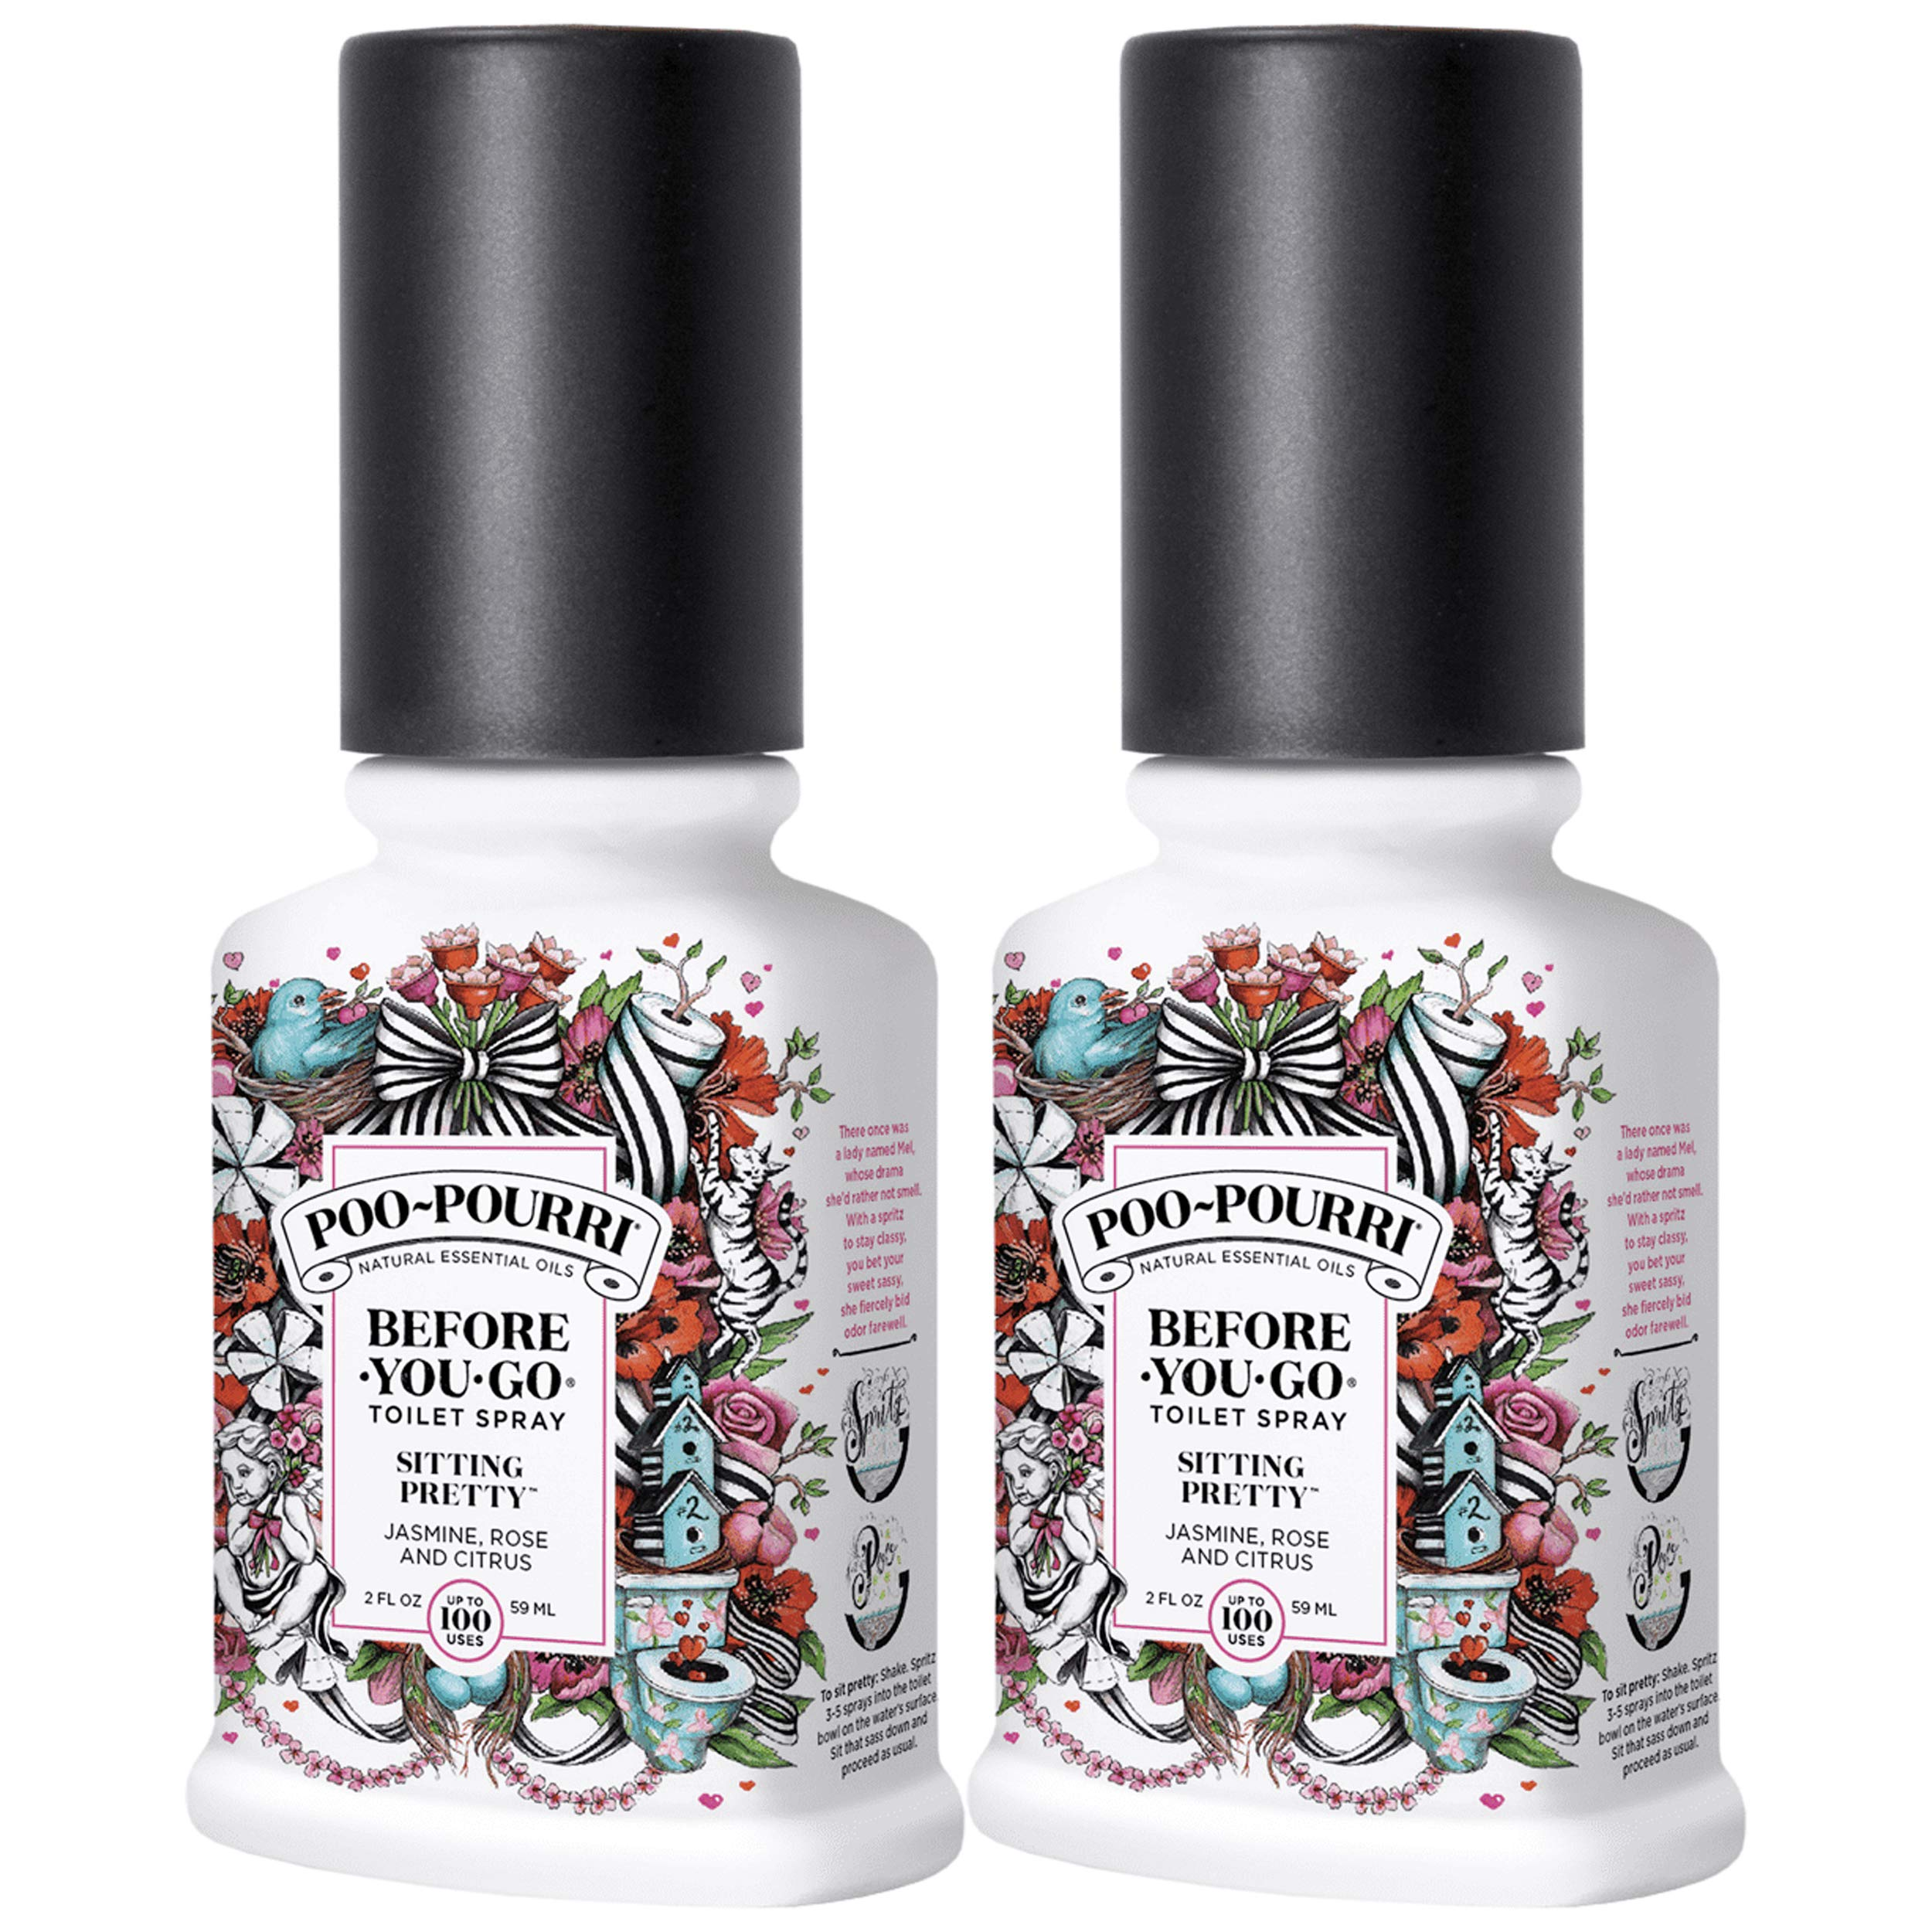 Poo-Pourri Before-You-Go Toilet Spray Bottle, 2 ounce Pack of 2 by Poo-Pourri (Image #1)